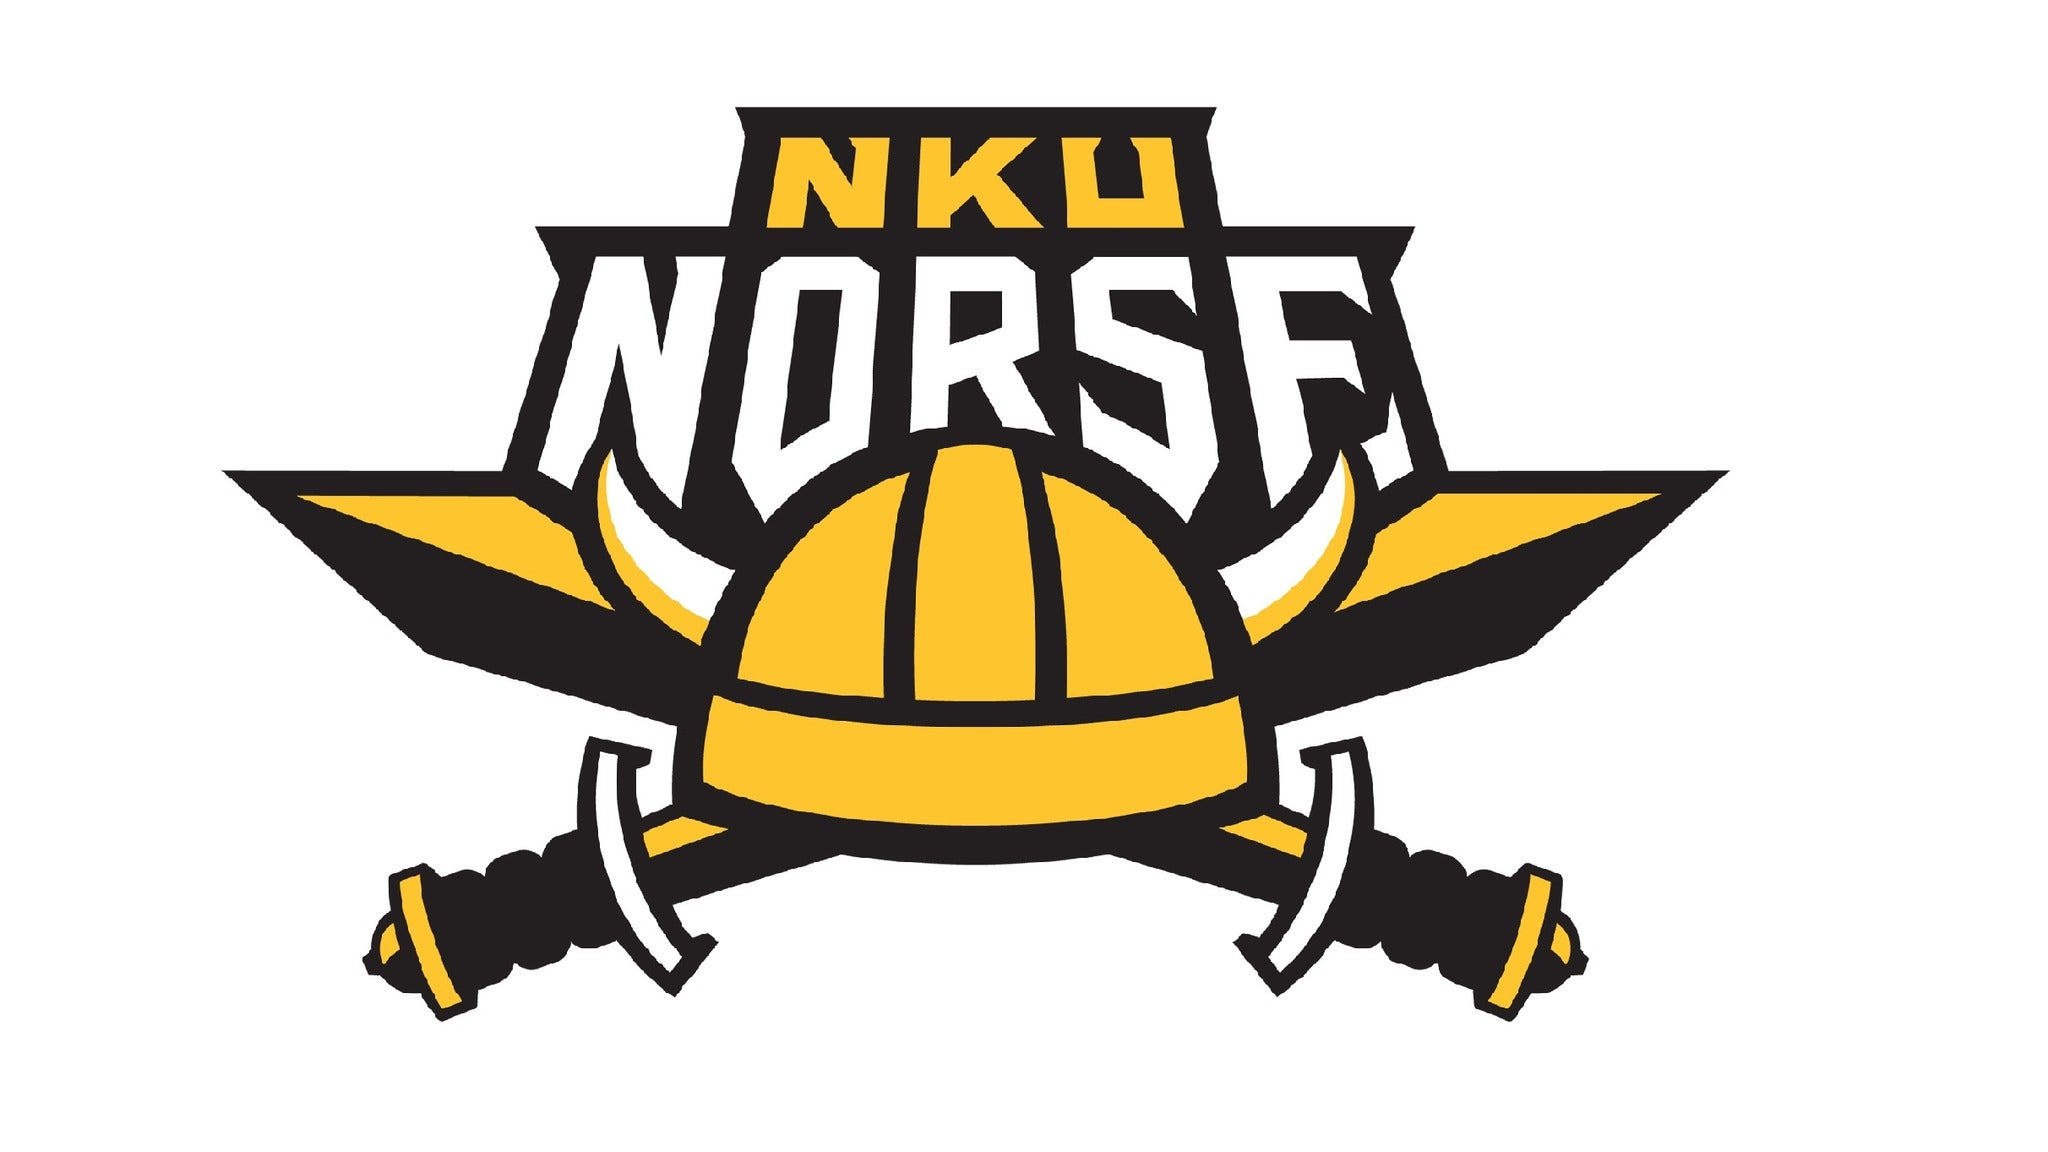 Northern Kentucky Norse Mens Basketball at BB&T Arena